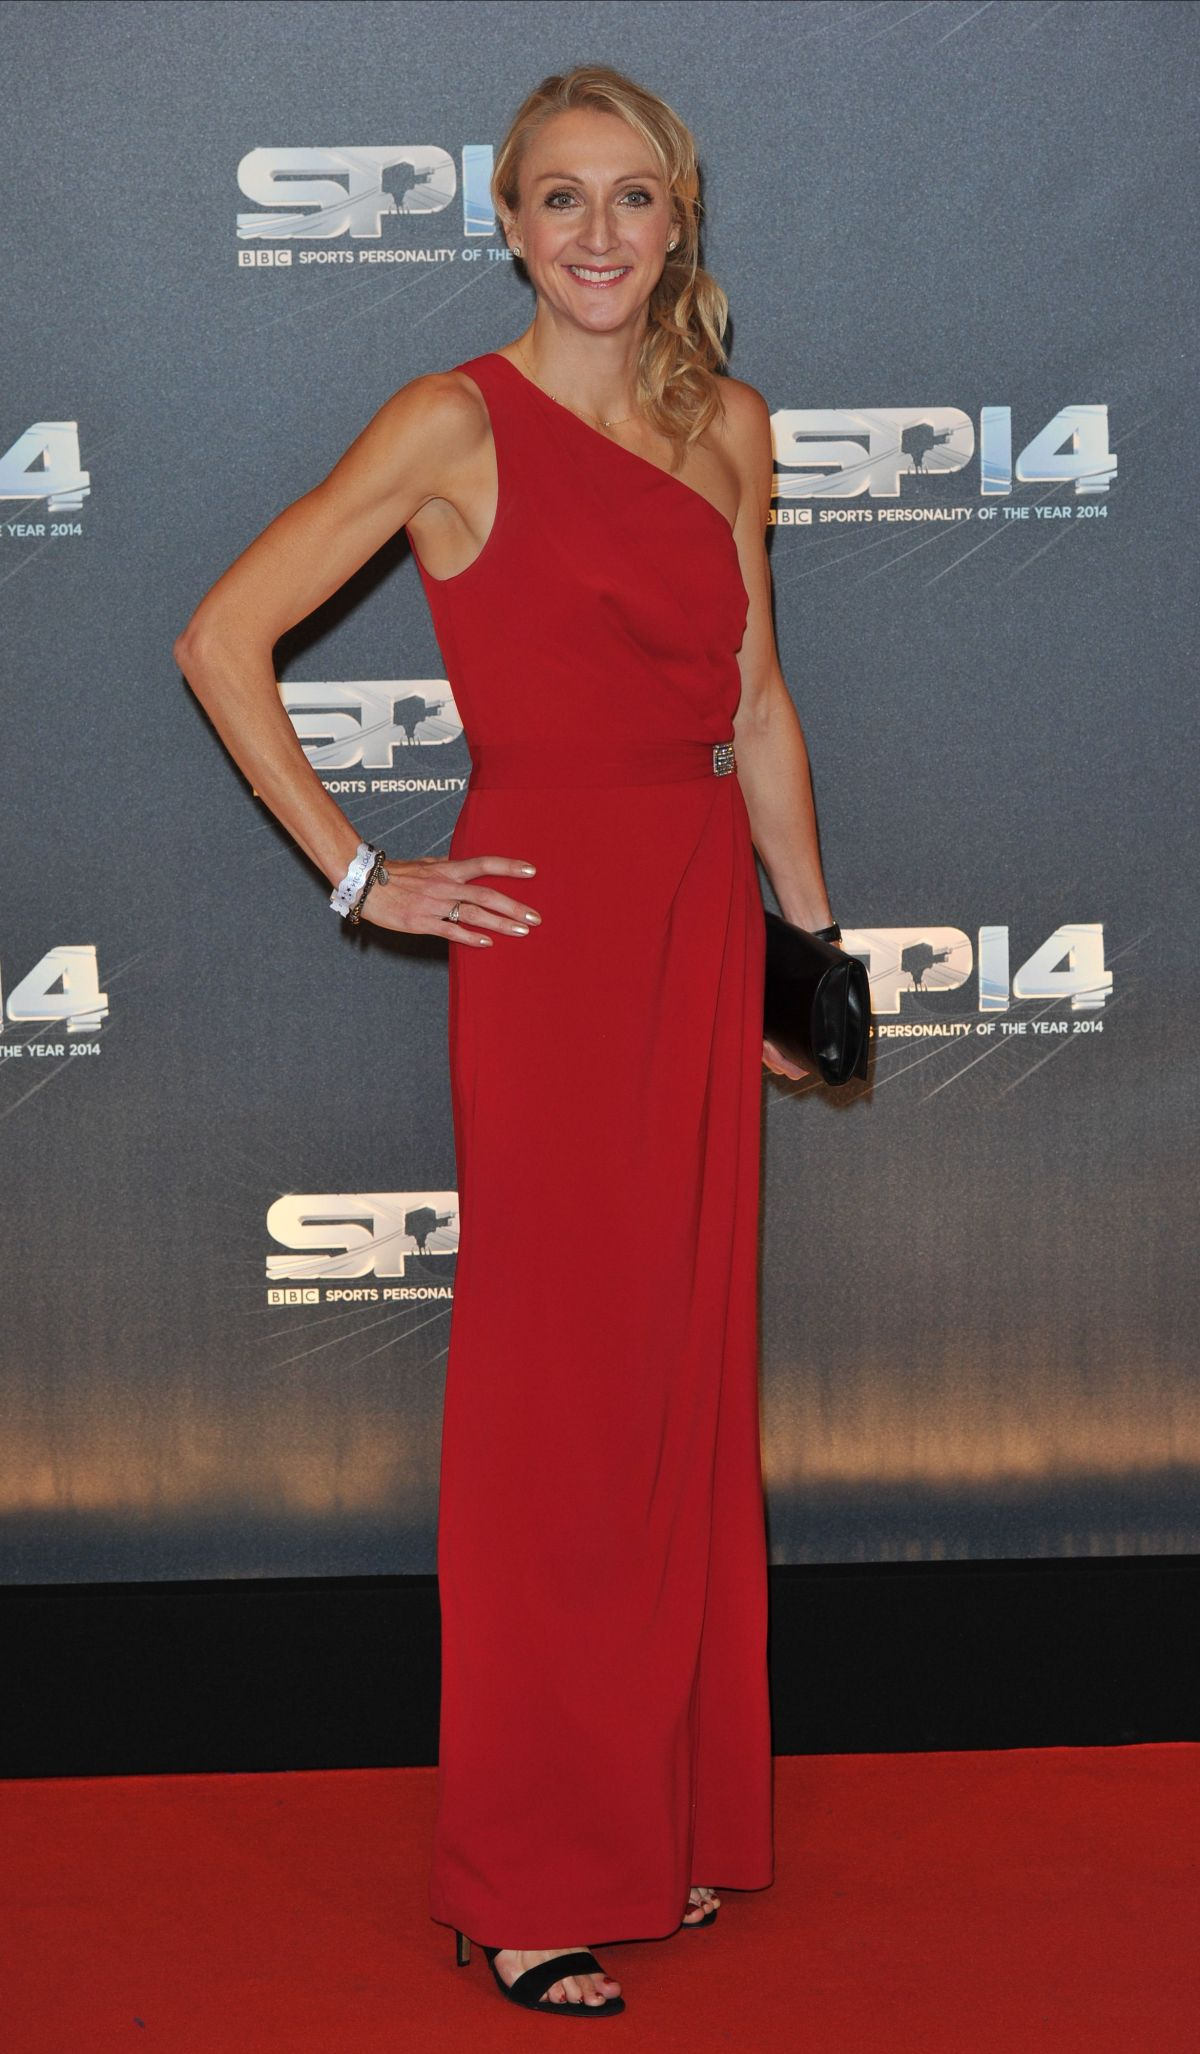 PAULA RACLIFFE at BBC Sports Personality of the Year Awards in Glasgow